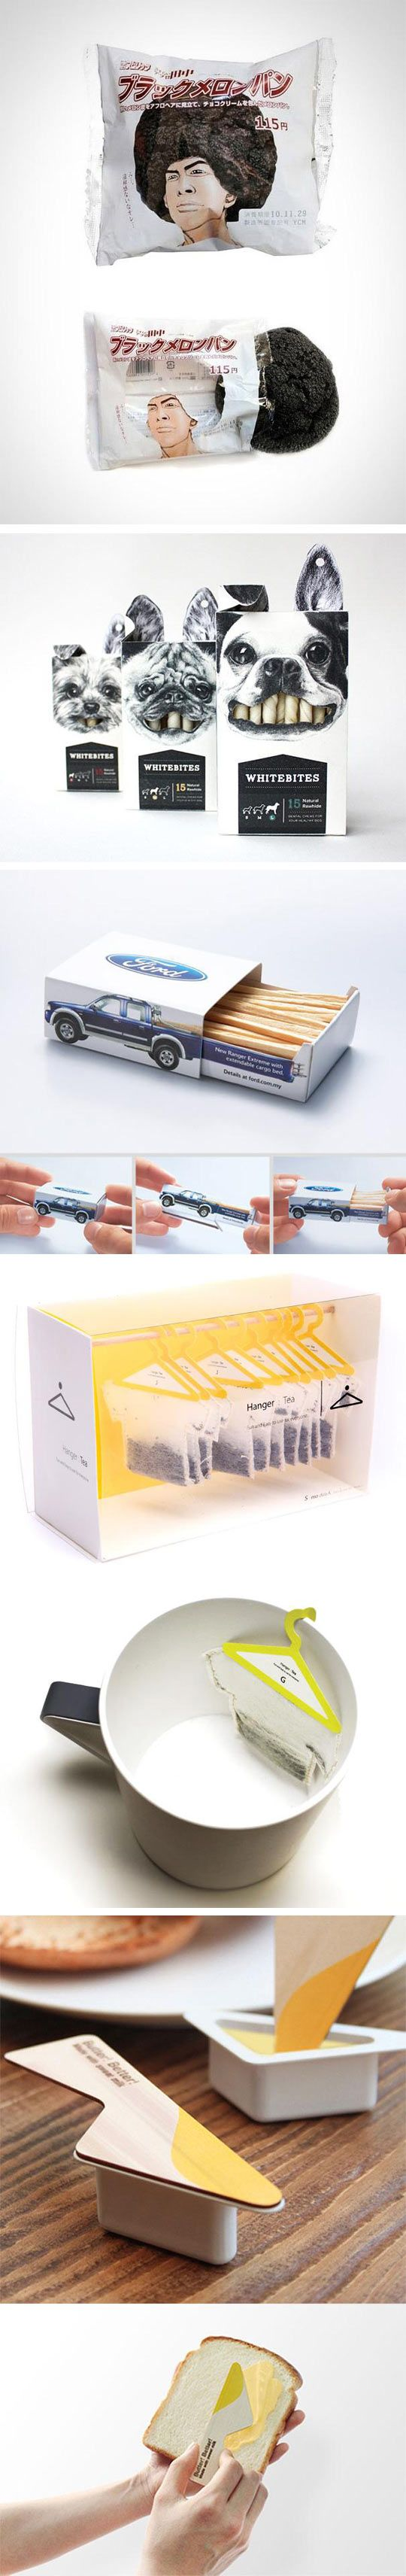 Genius Packaging